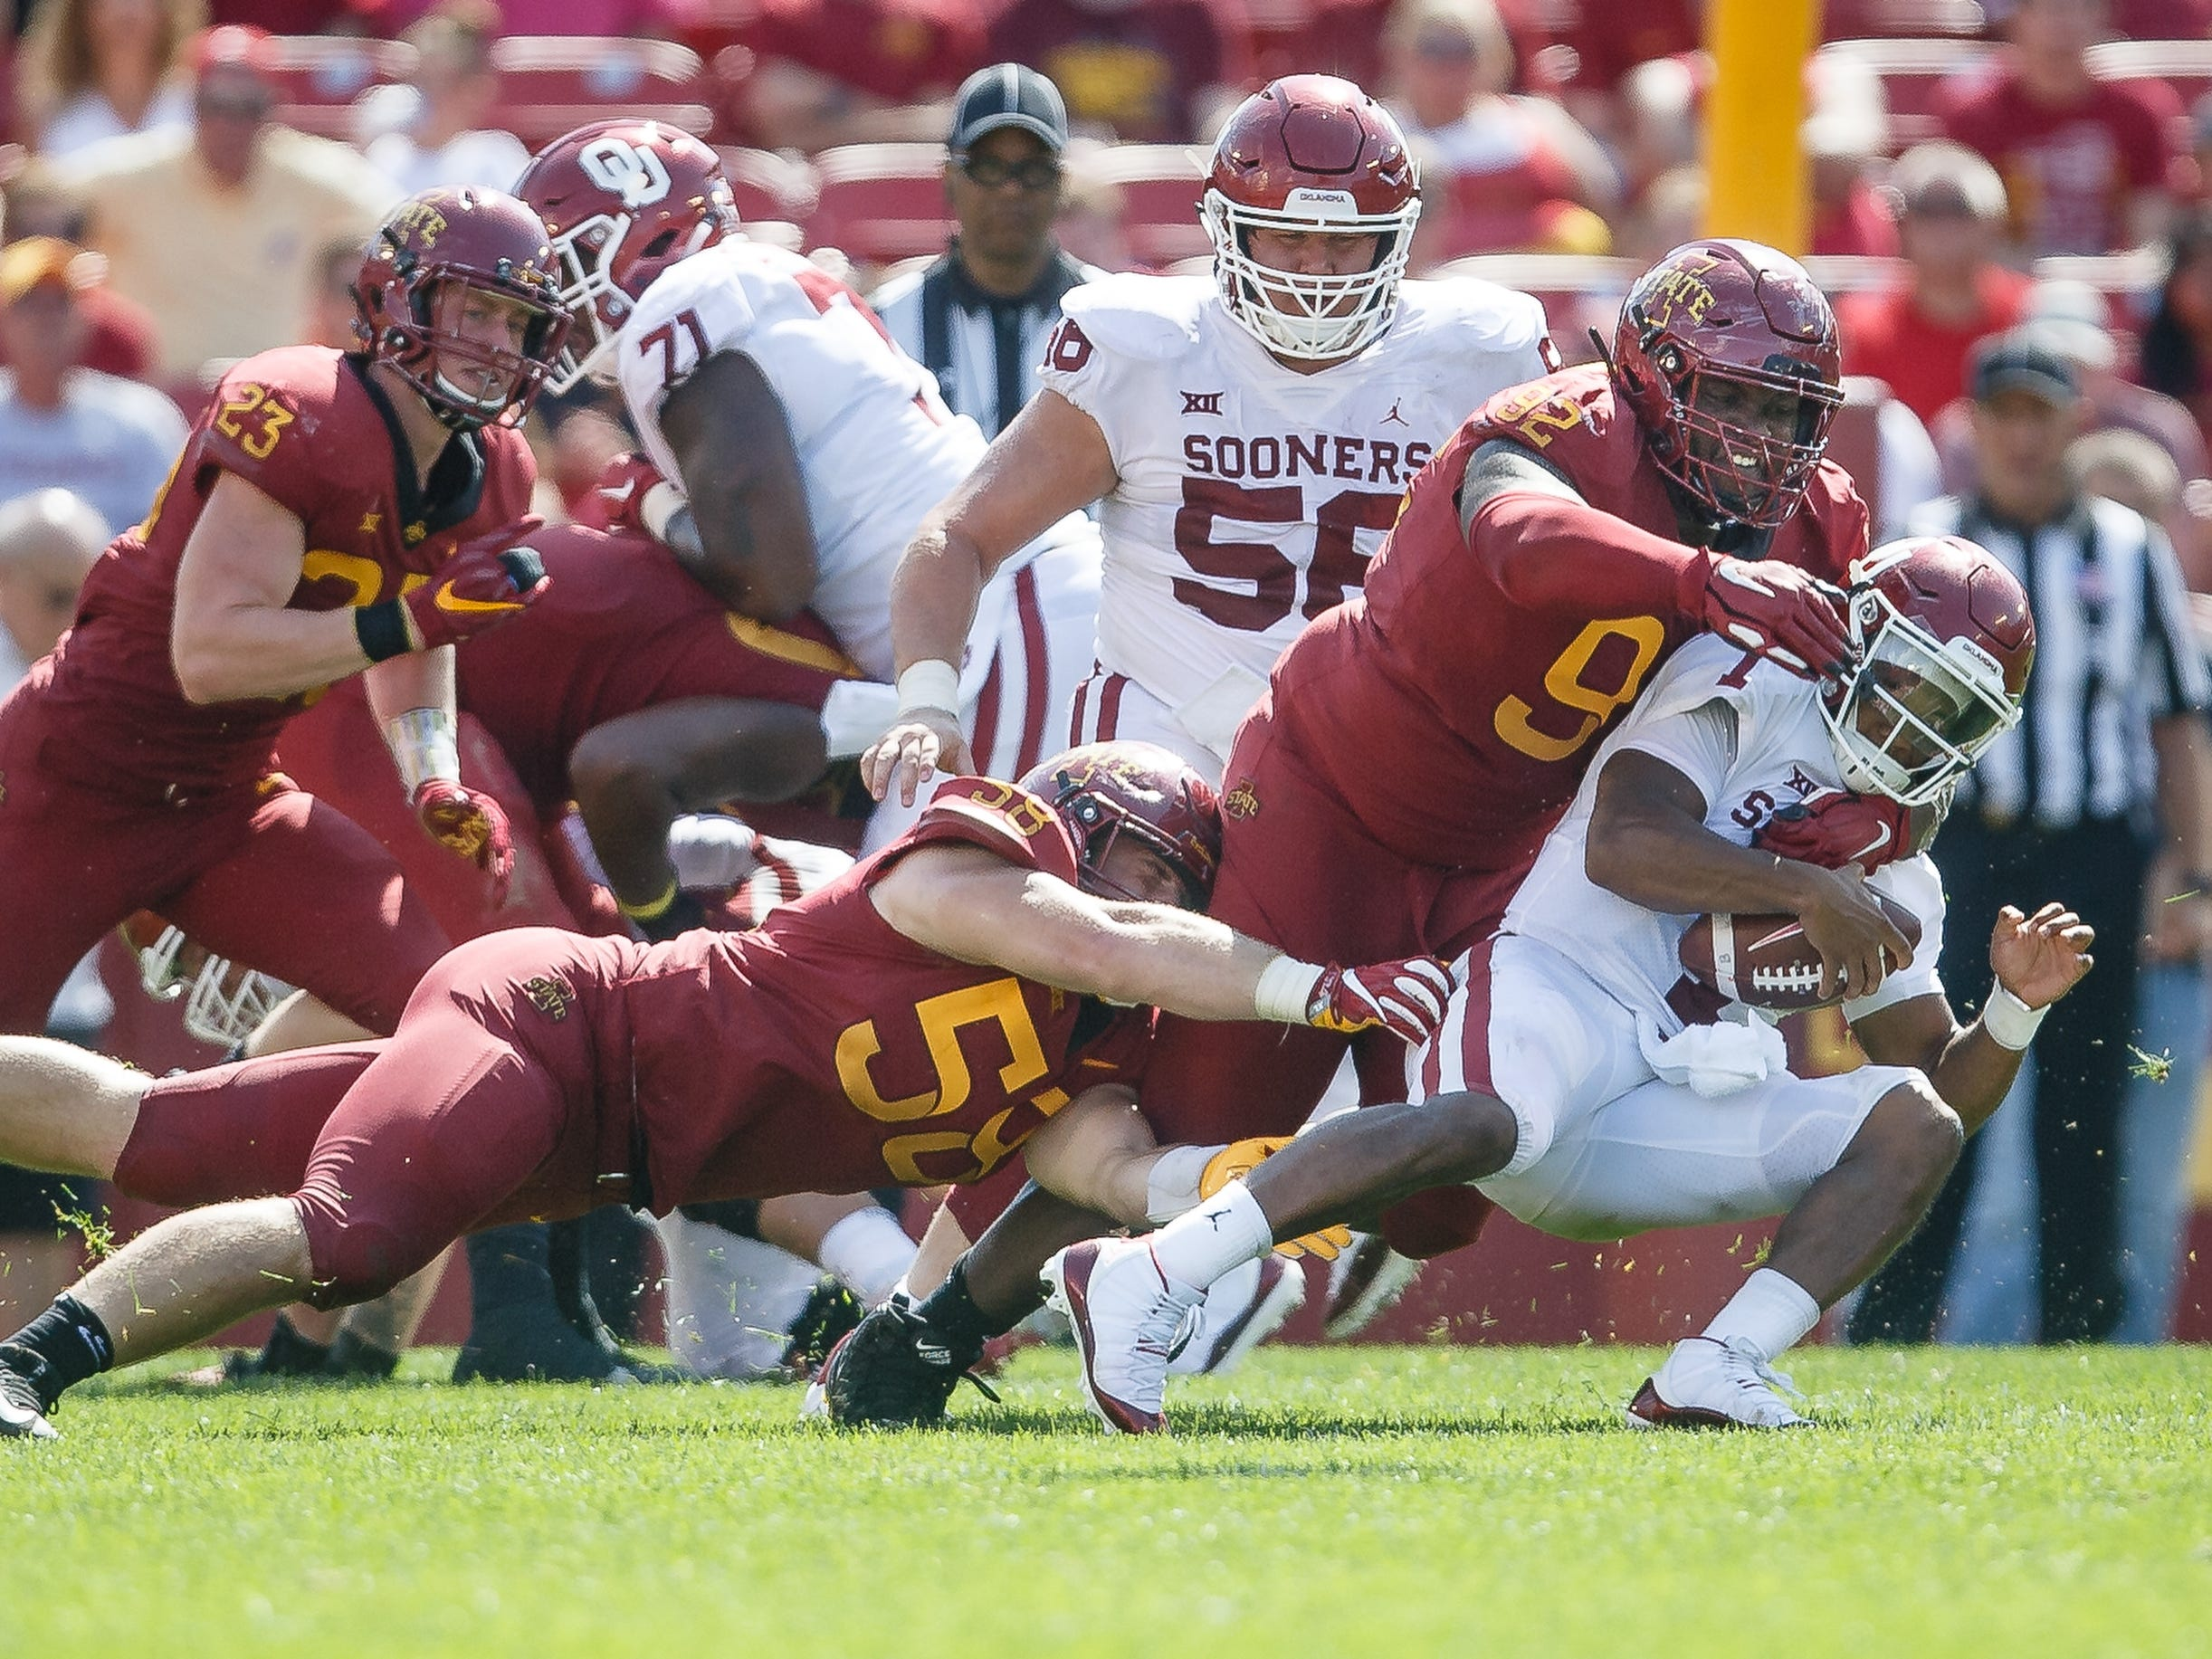 Iowa State's Jamahl Johnson (92) sacks Oklahoma's Kyler Murray (1) during their football game at Jack Trice Stadium on Saturday, Sept. 15, 2018 in Ames. Oklahoma would go on to win 37-27.